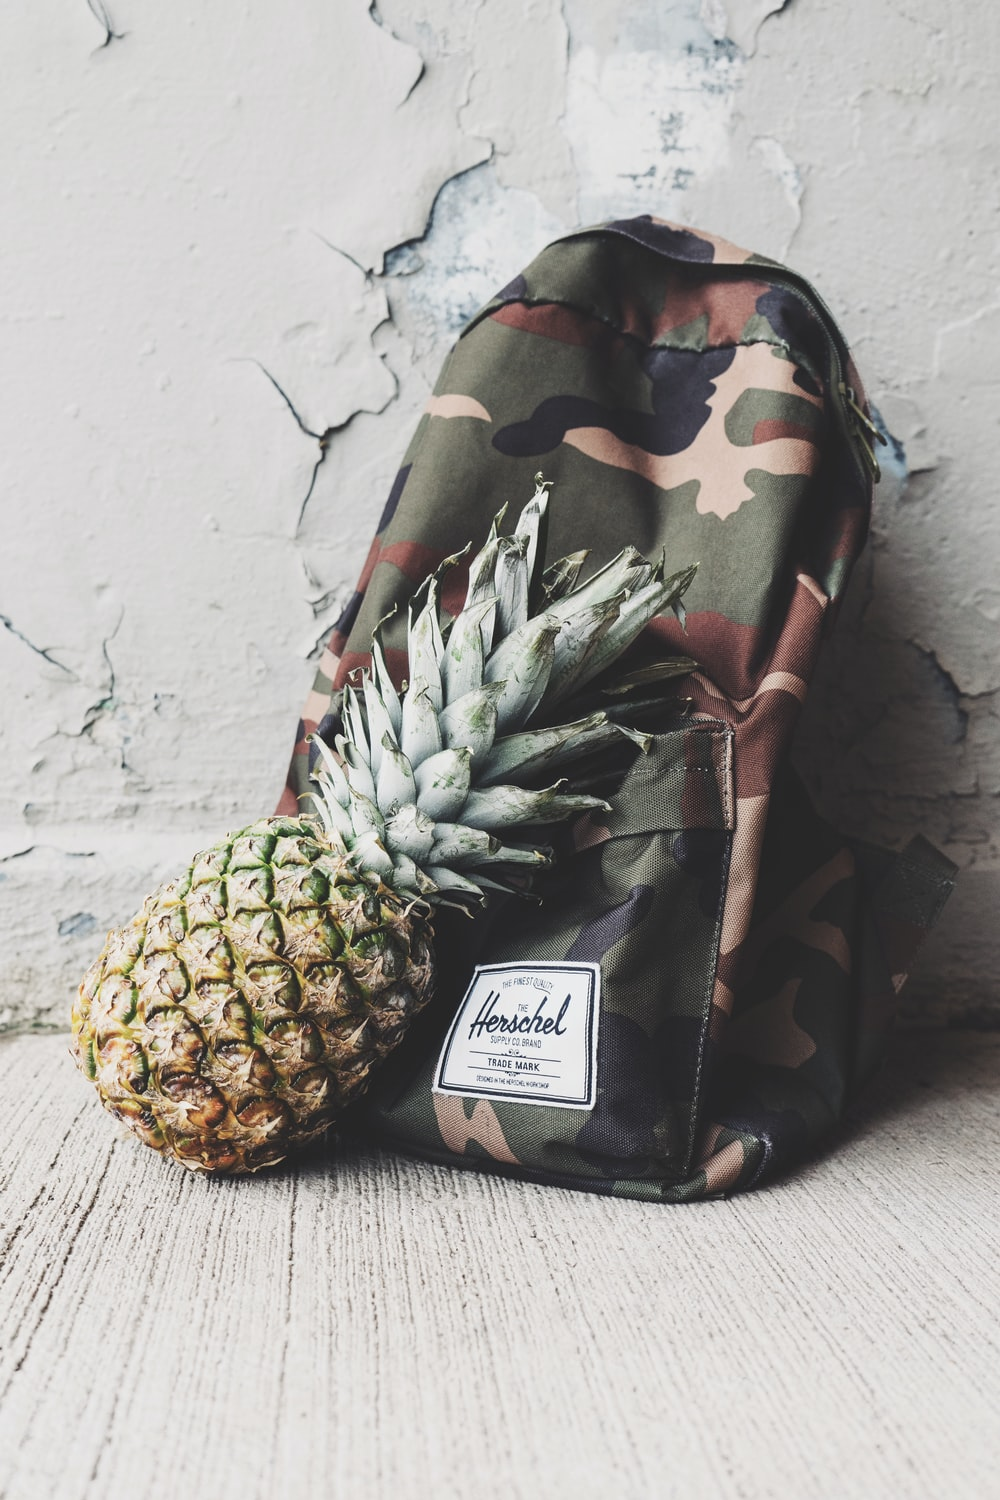 pineapple fruit leaning on camouflage backpack